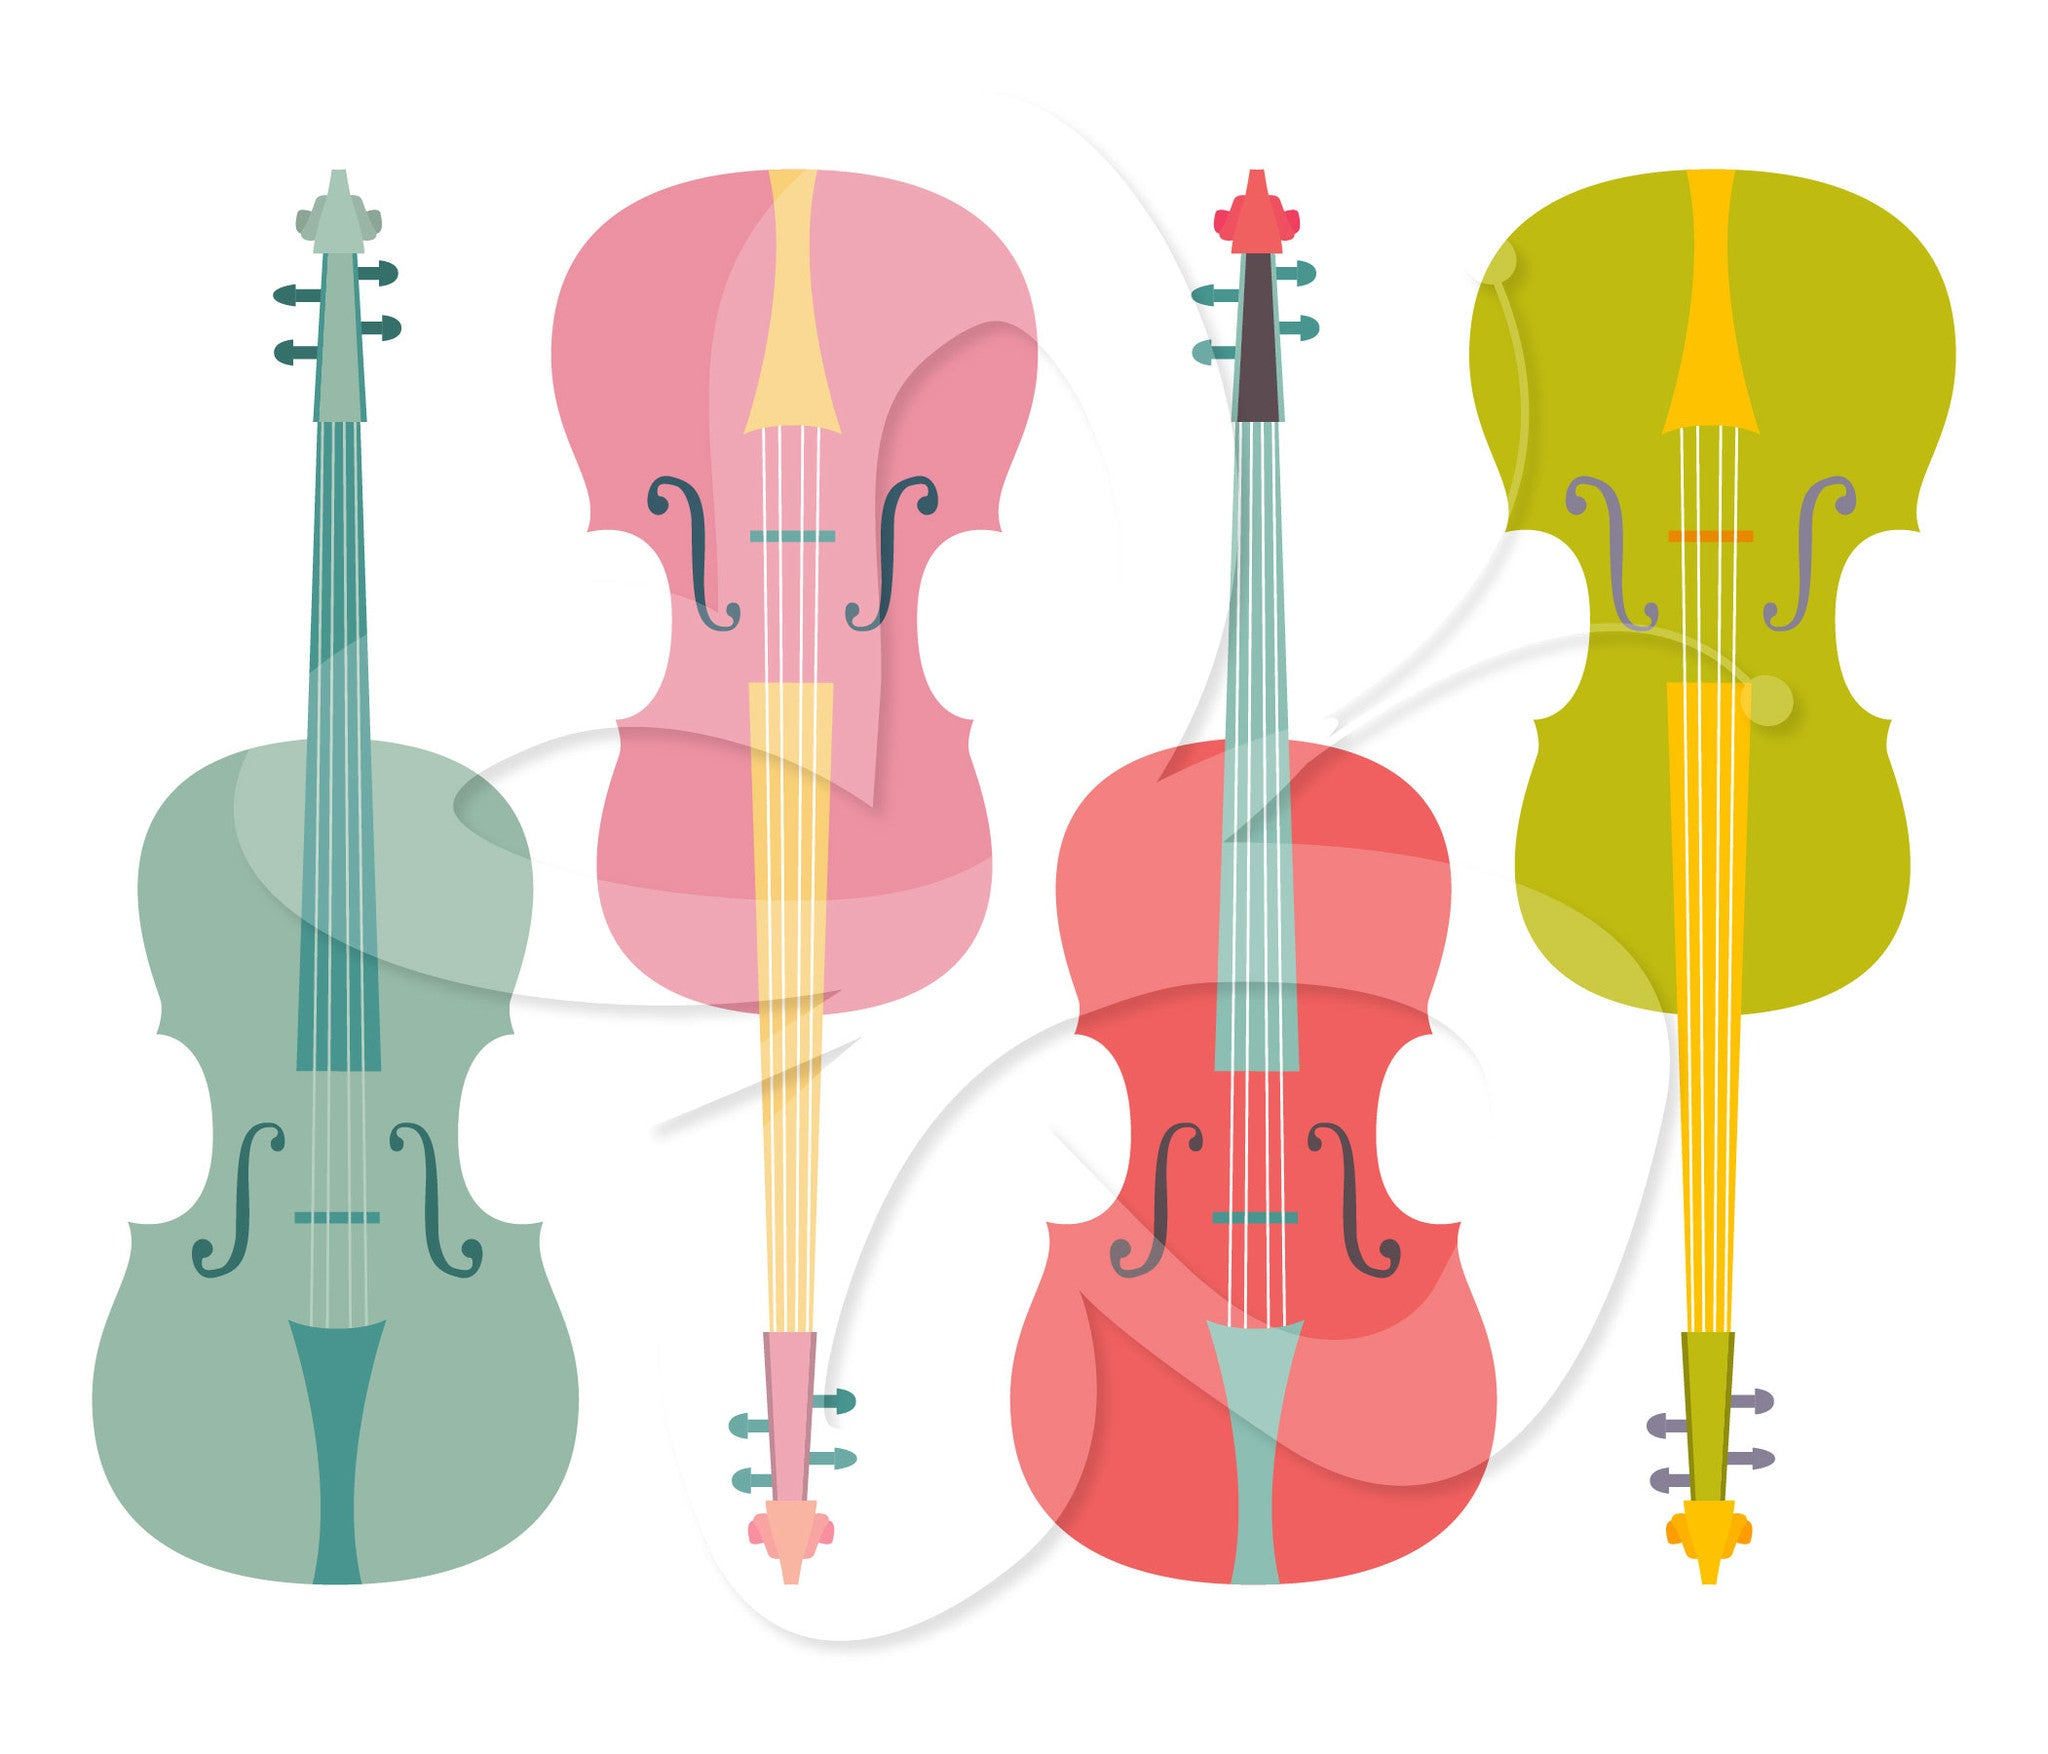 Violin lesson (4 private sessions) - Each session for 30 min